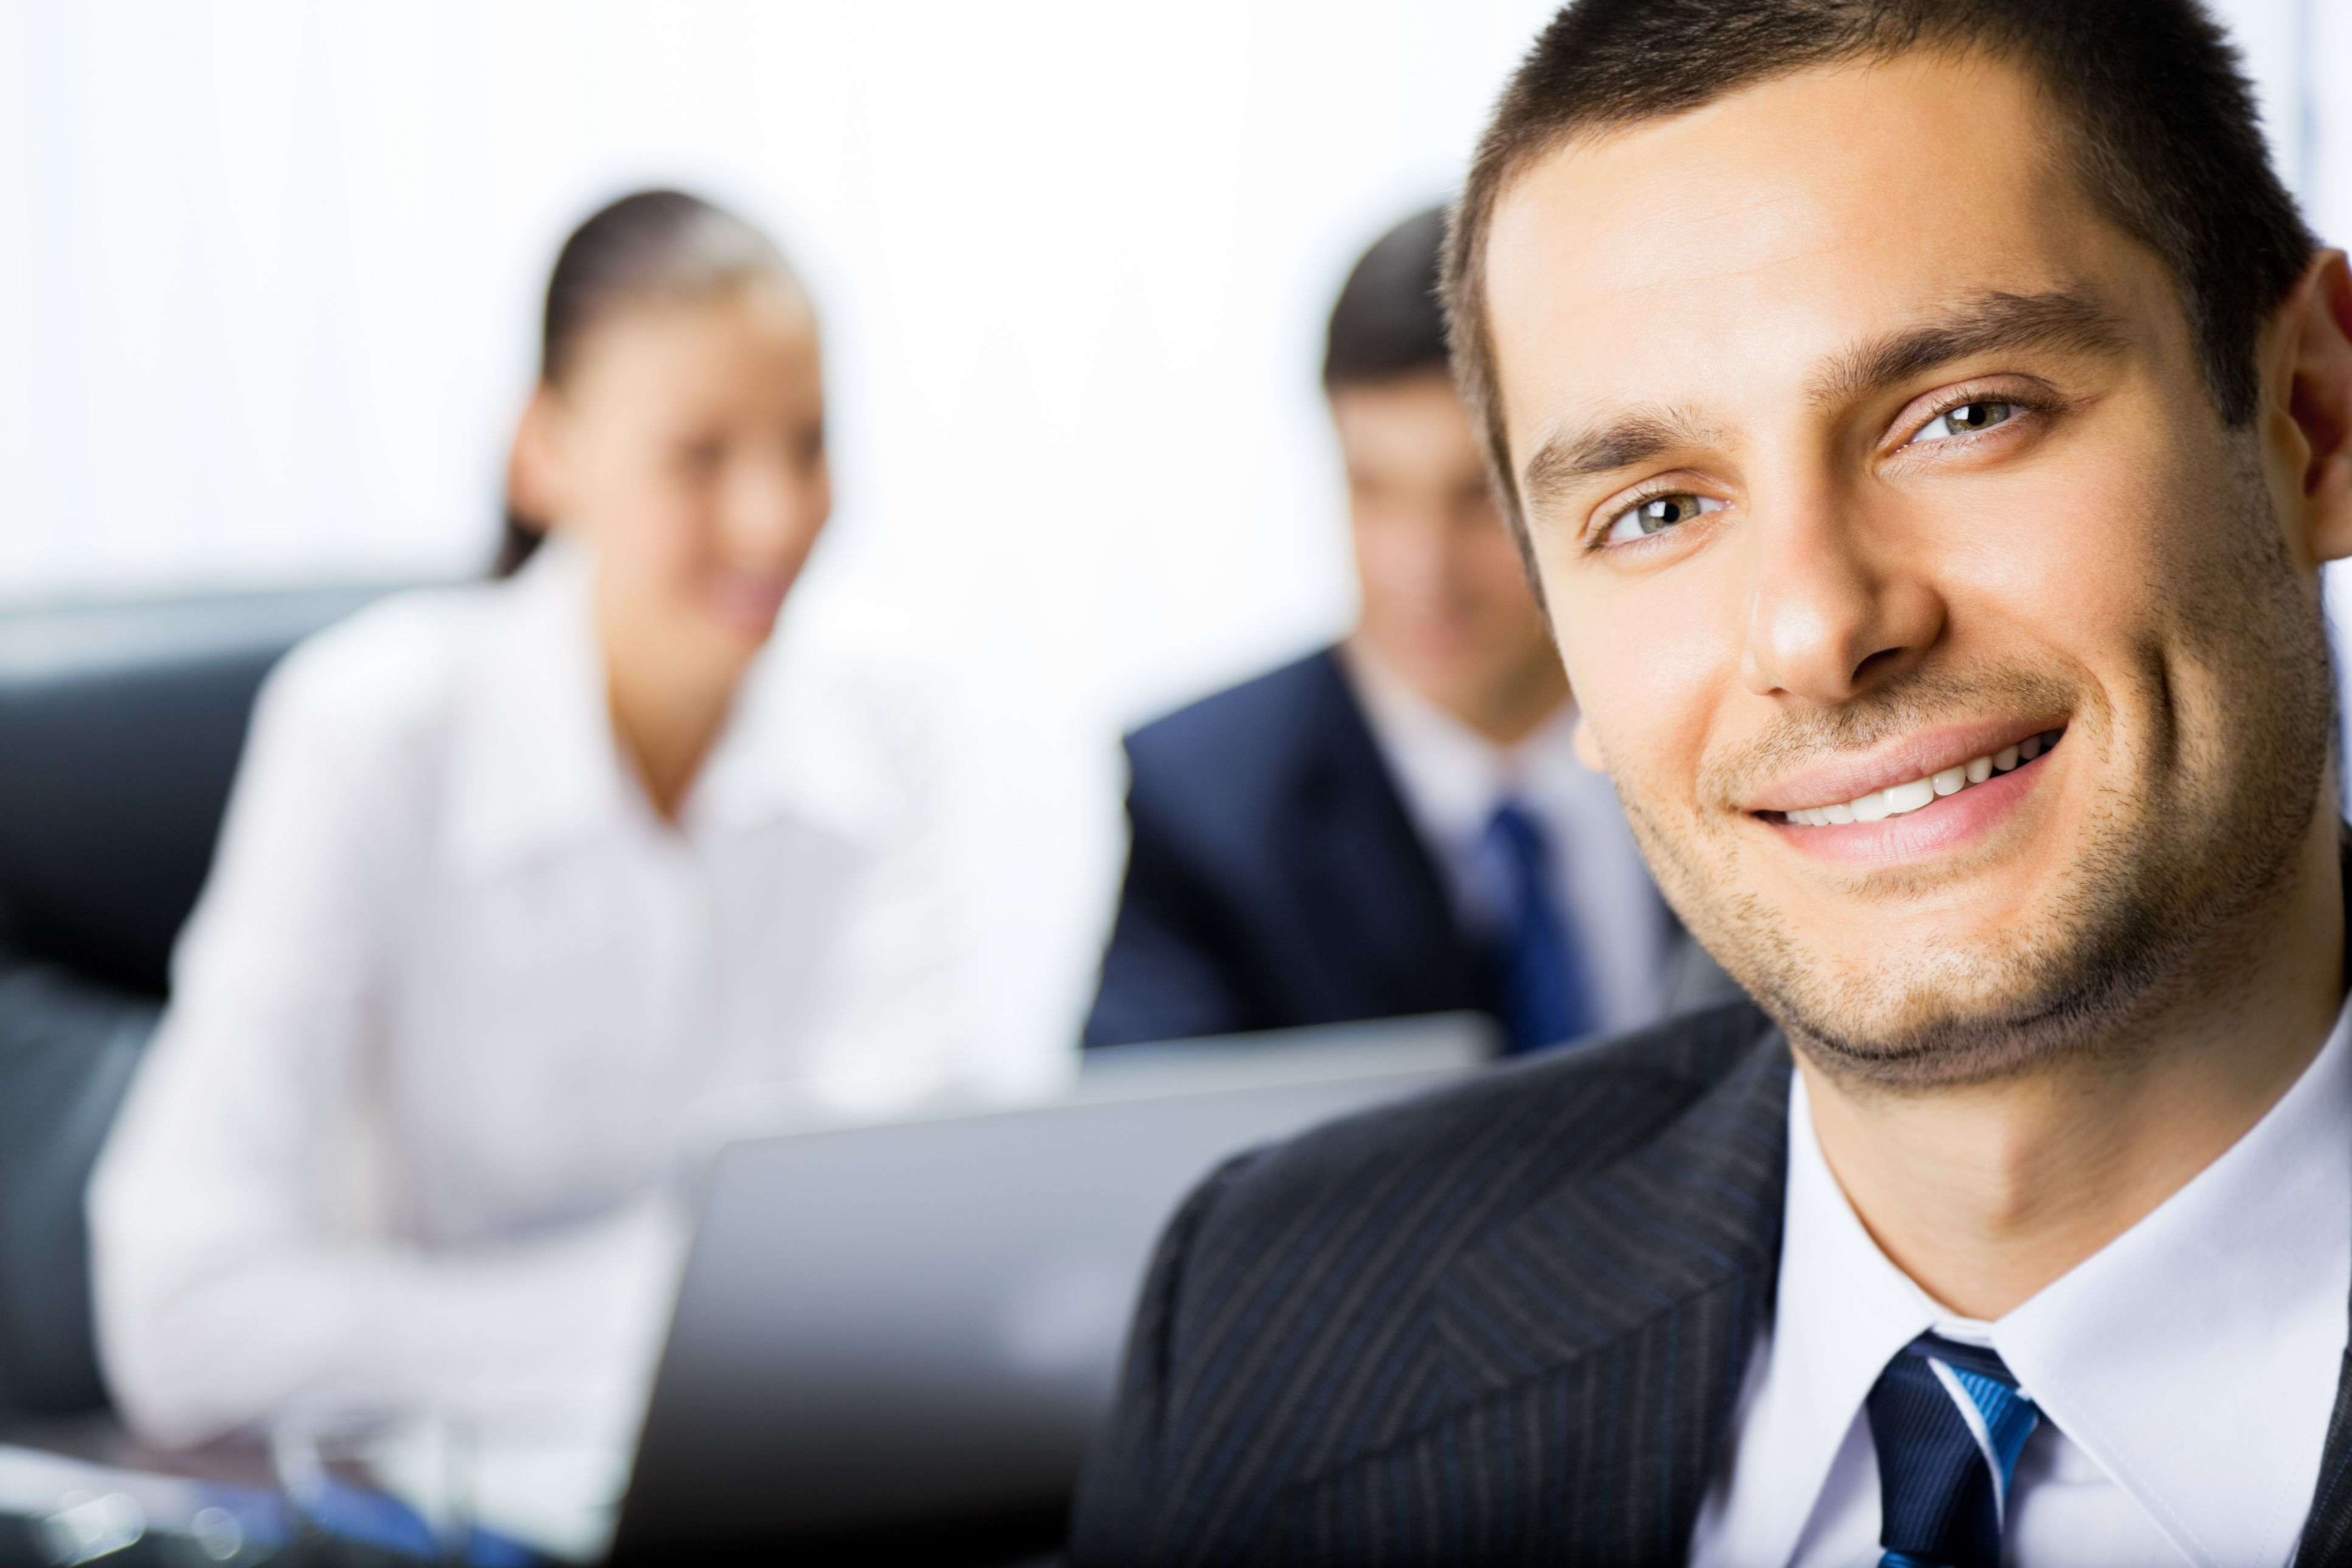 Needed network engineer ccna6779 for a job opening in